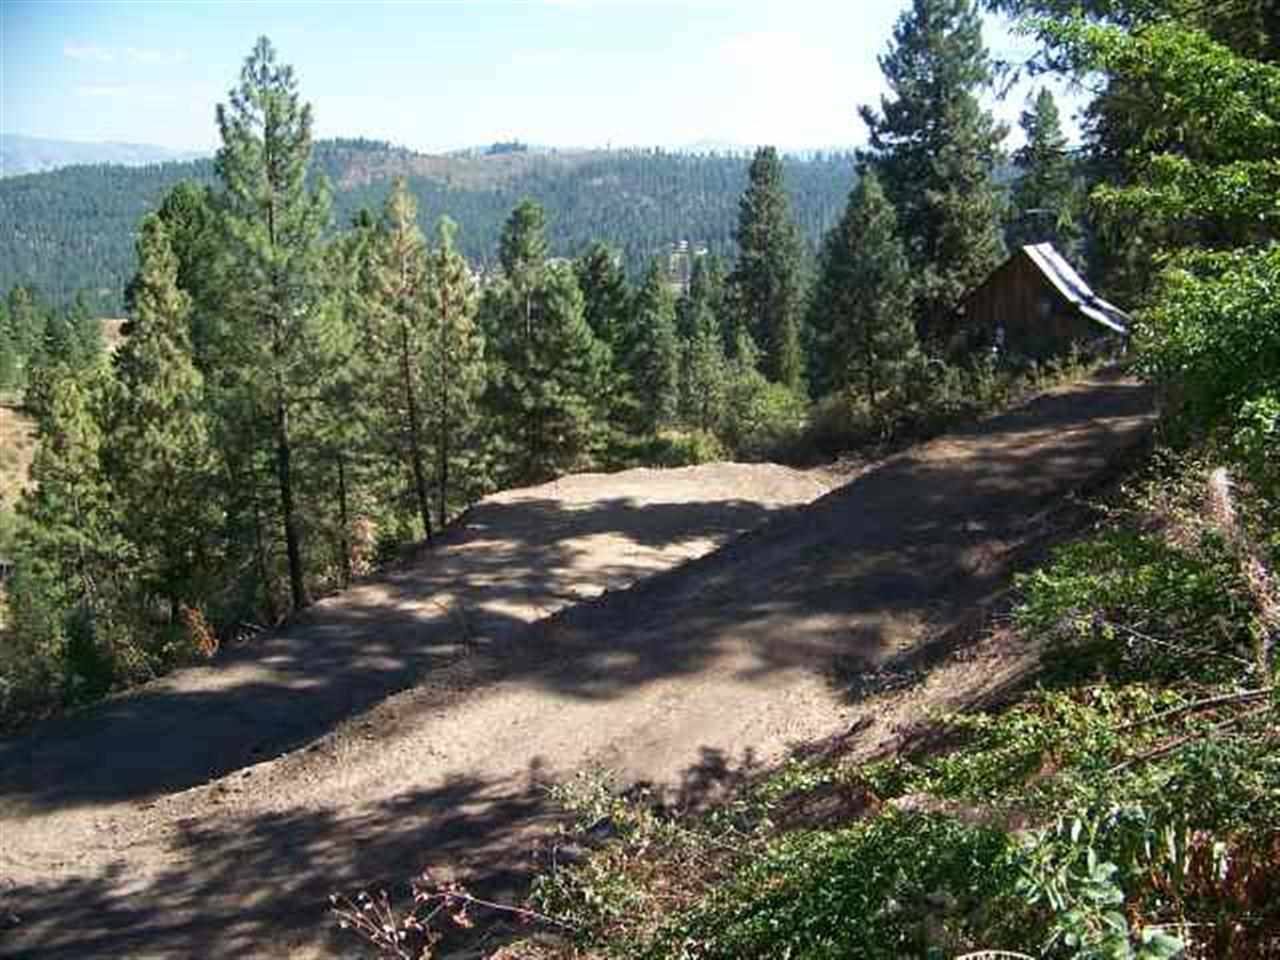 Lot 13 Clear Creek Estates # 13, Boise, Idaho 83716, Land For Sale, Price $49,000, 98682784